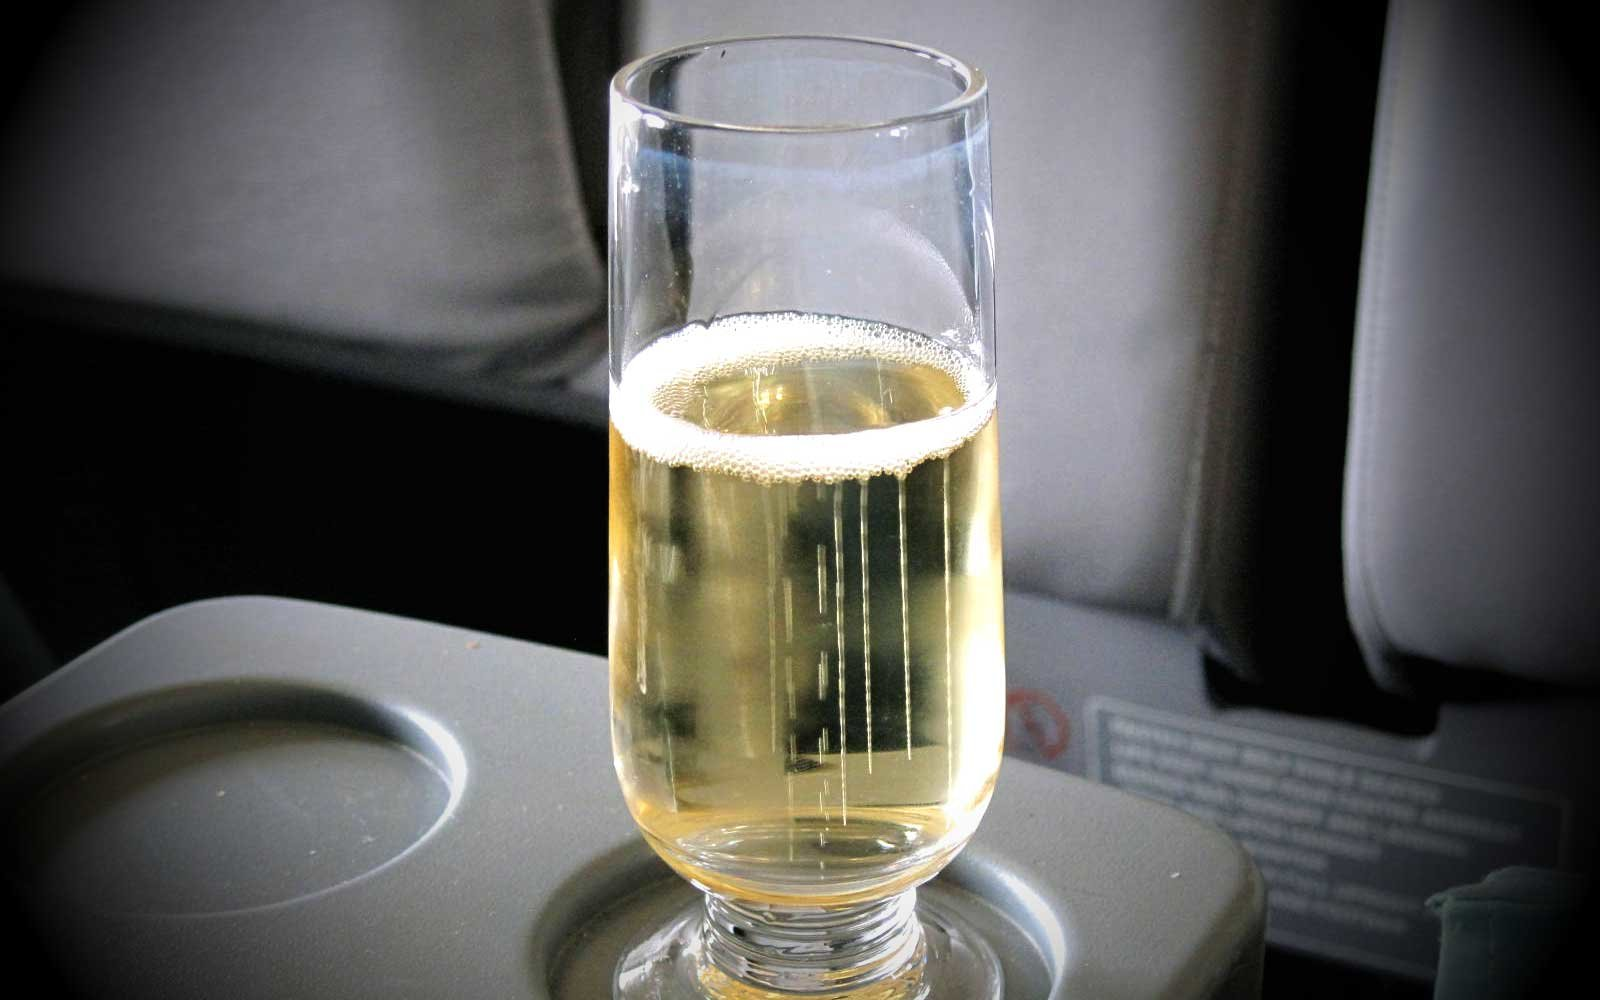 Airplane beverage